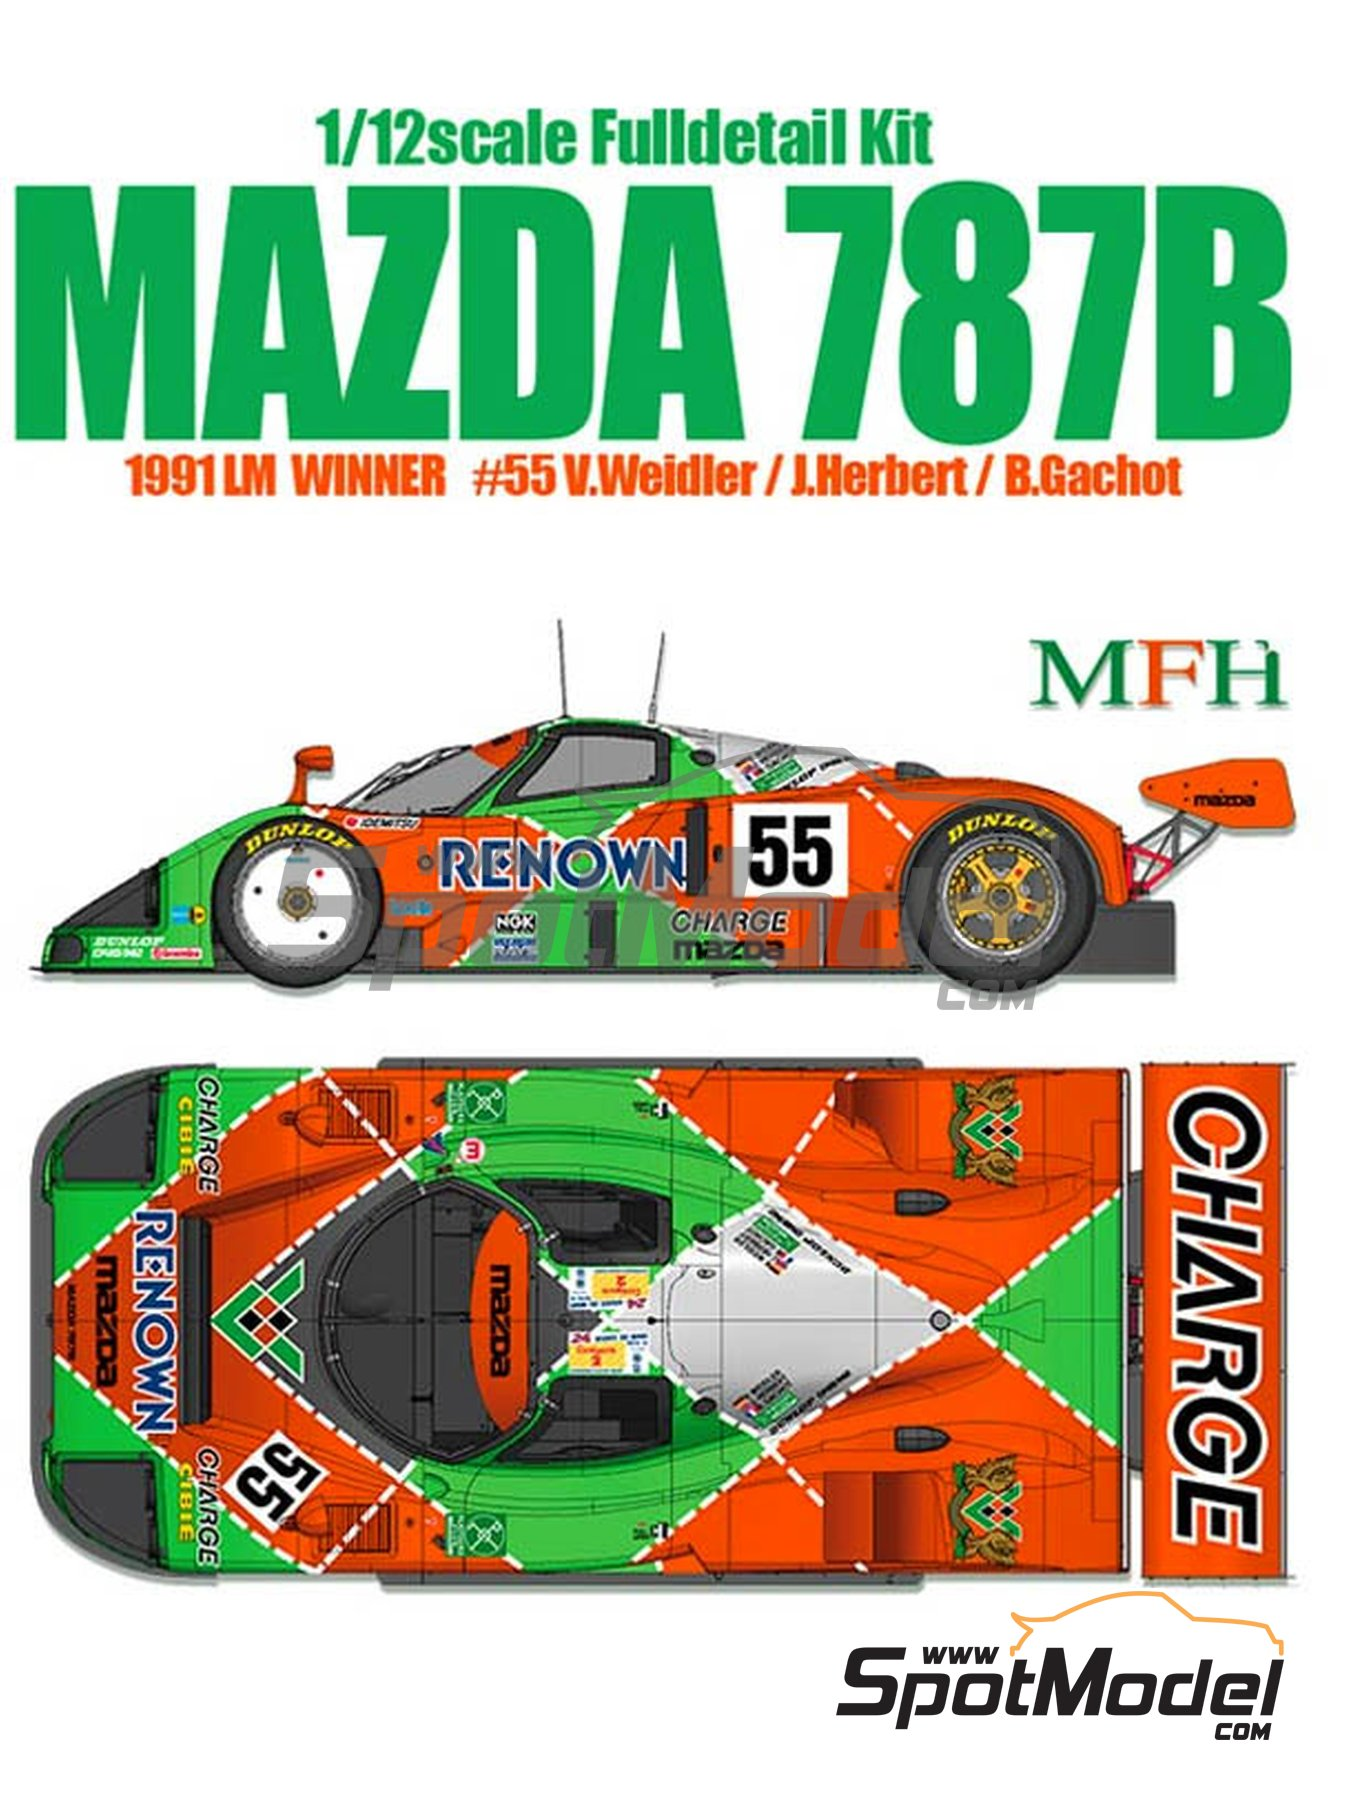 Mazda 787B Renown - 24 Hours Le Mans 1991 | Model car kit in 1/12 scale manufactured by Model Factory Hiro (ref. MFH-K628, also K-628) image